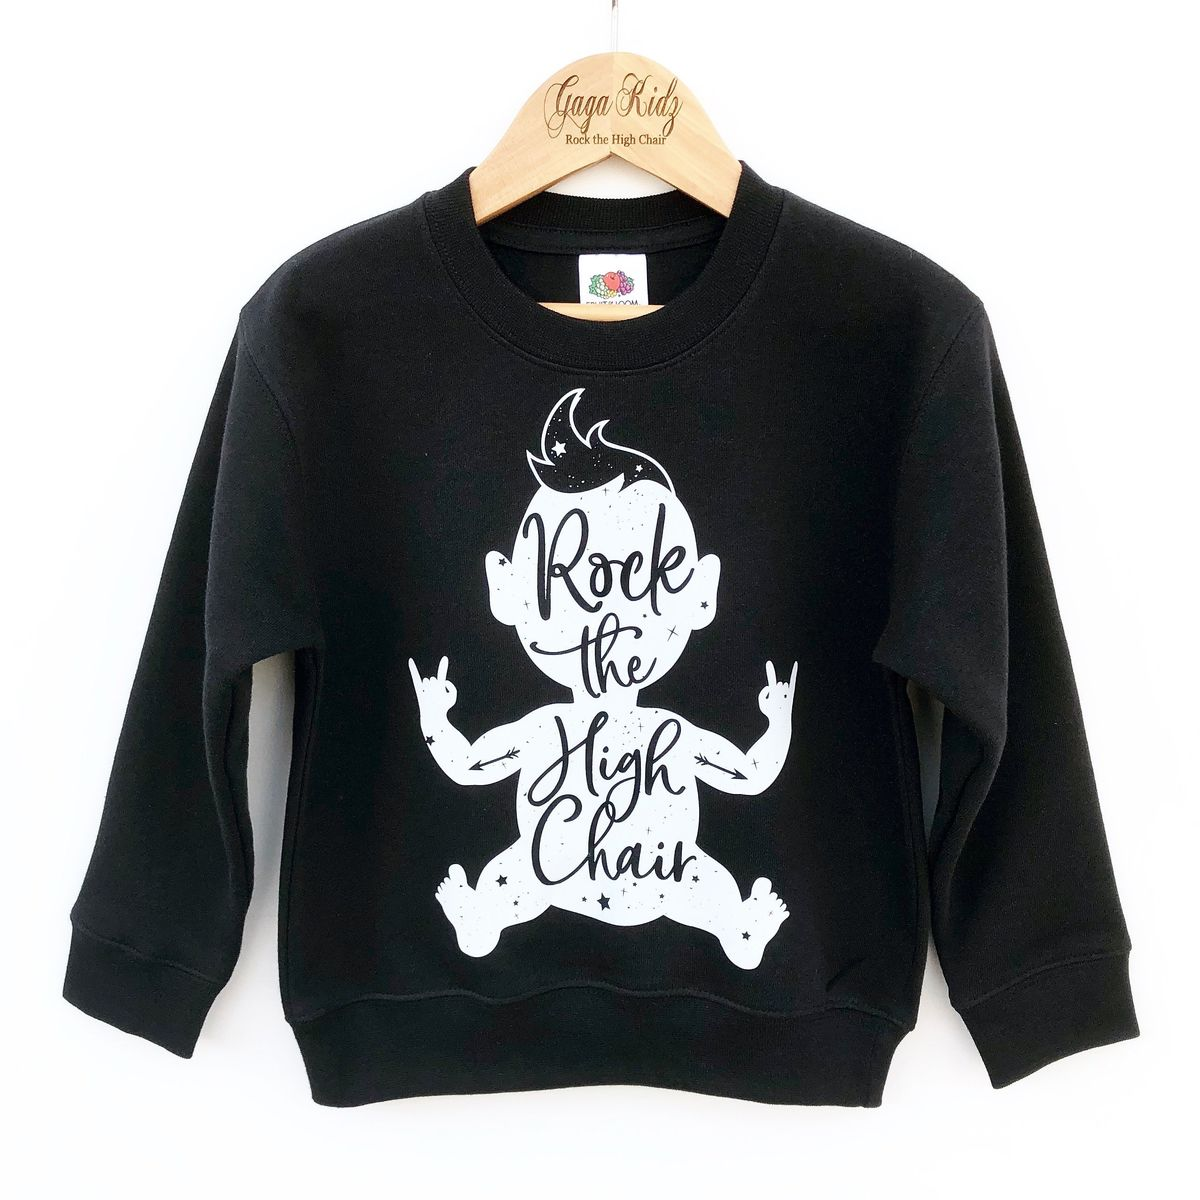 'Rock the High Chair' Kids Sweatshirt (various sizes) - product images  of